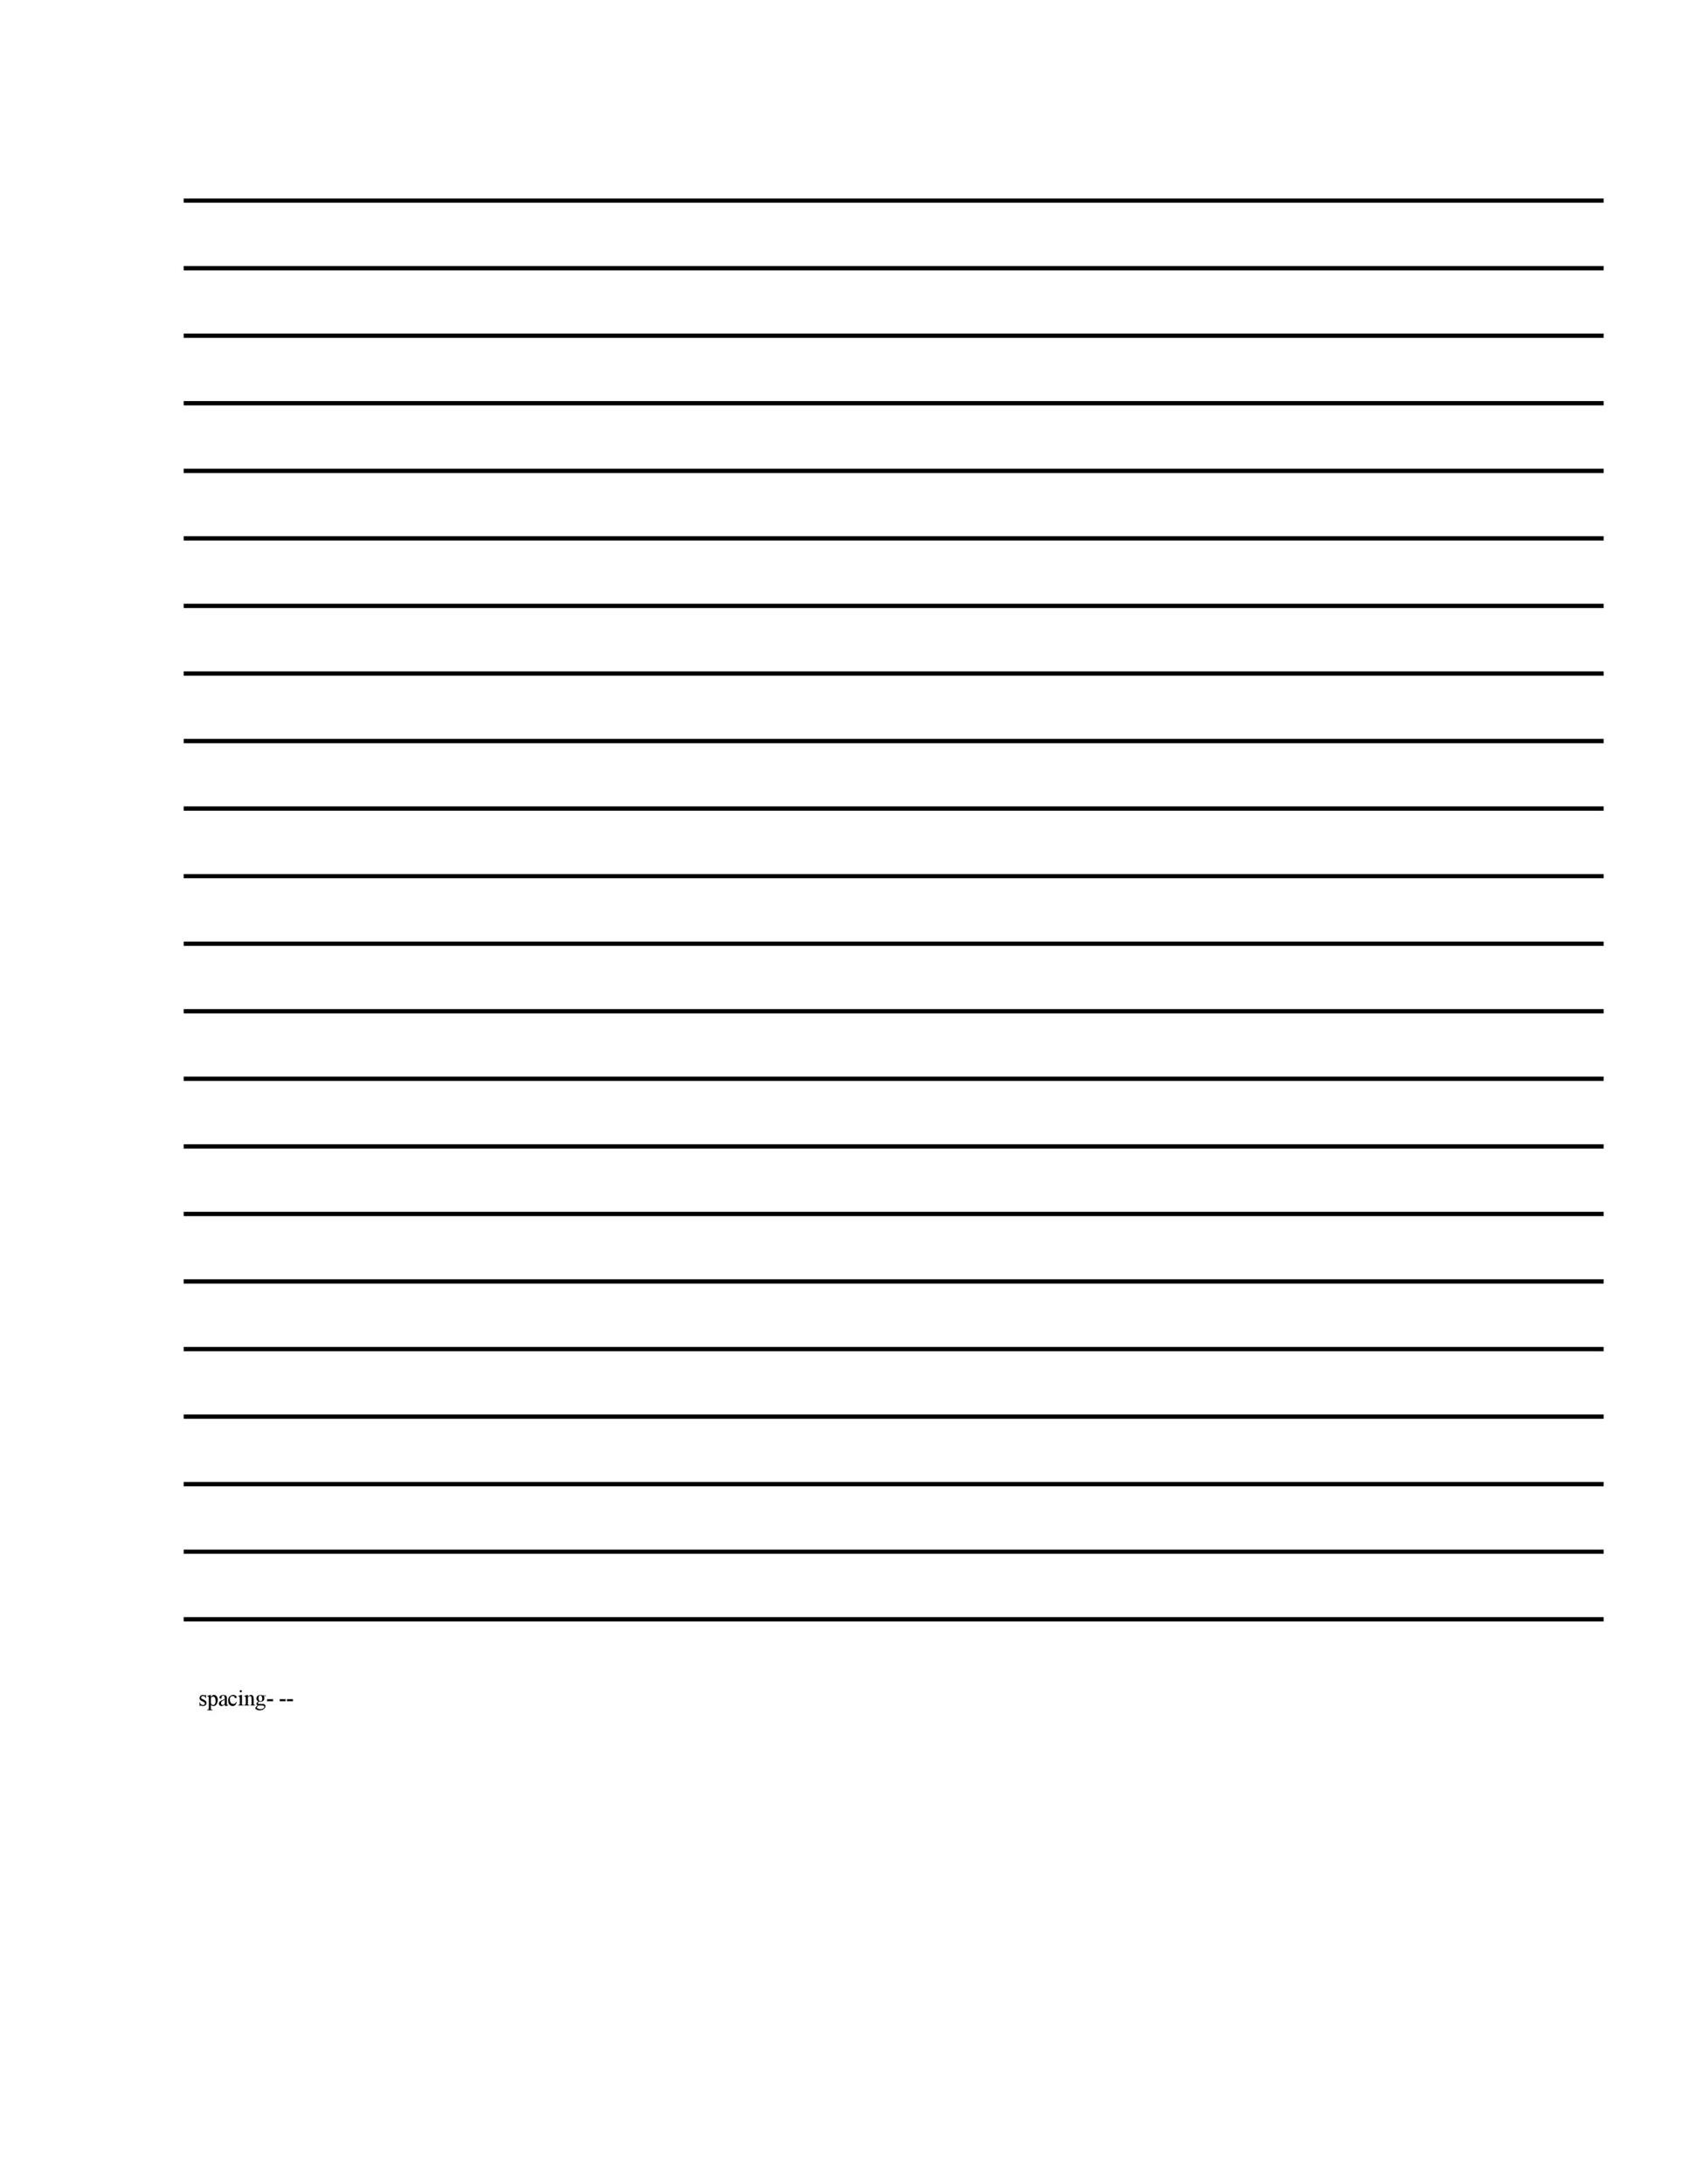 Free lined paper template 04